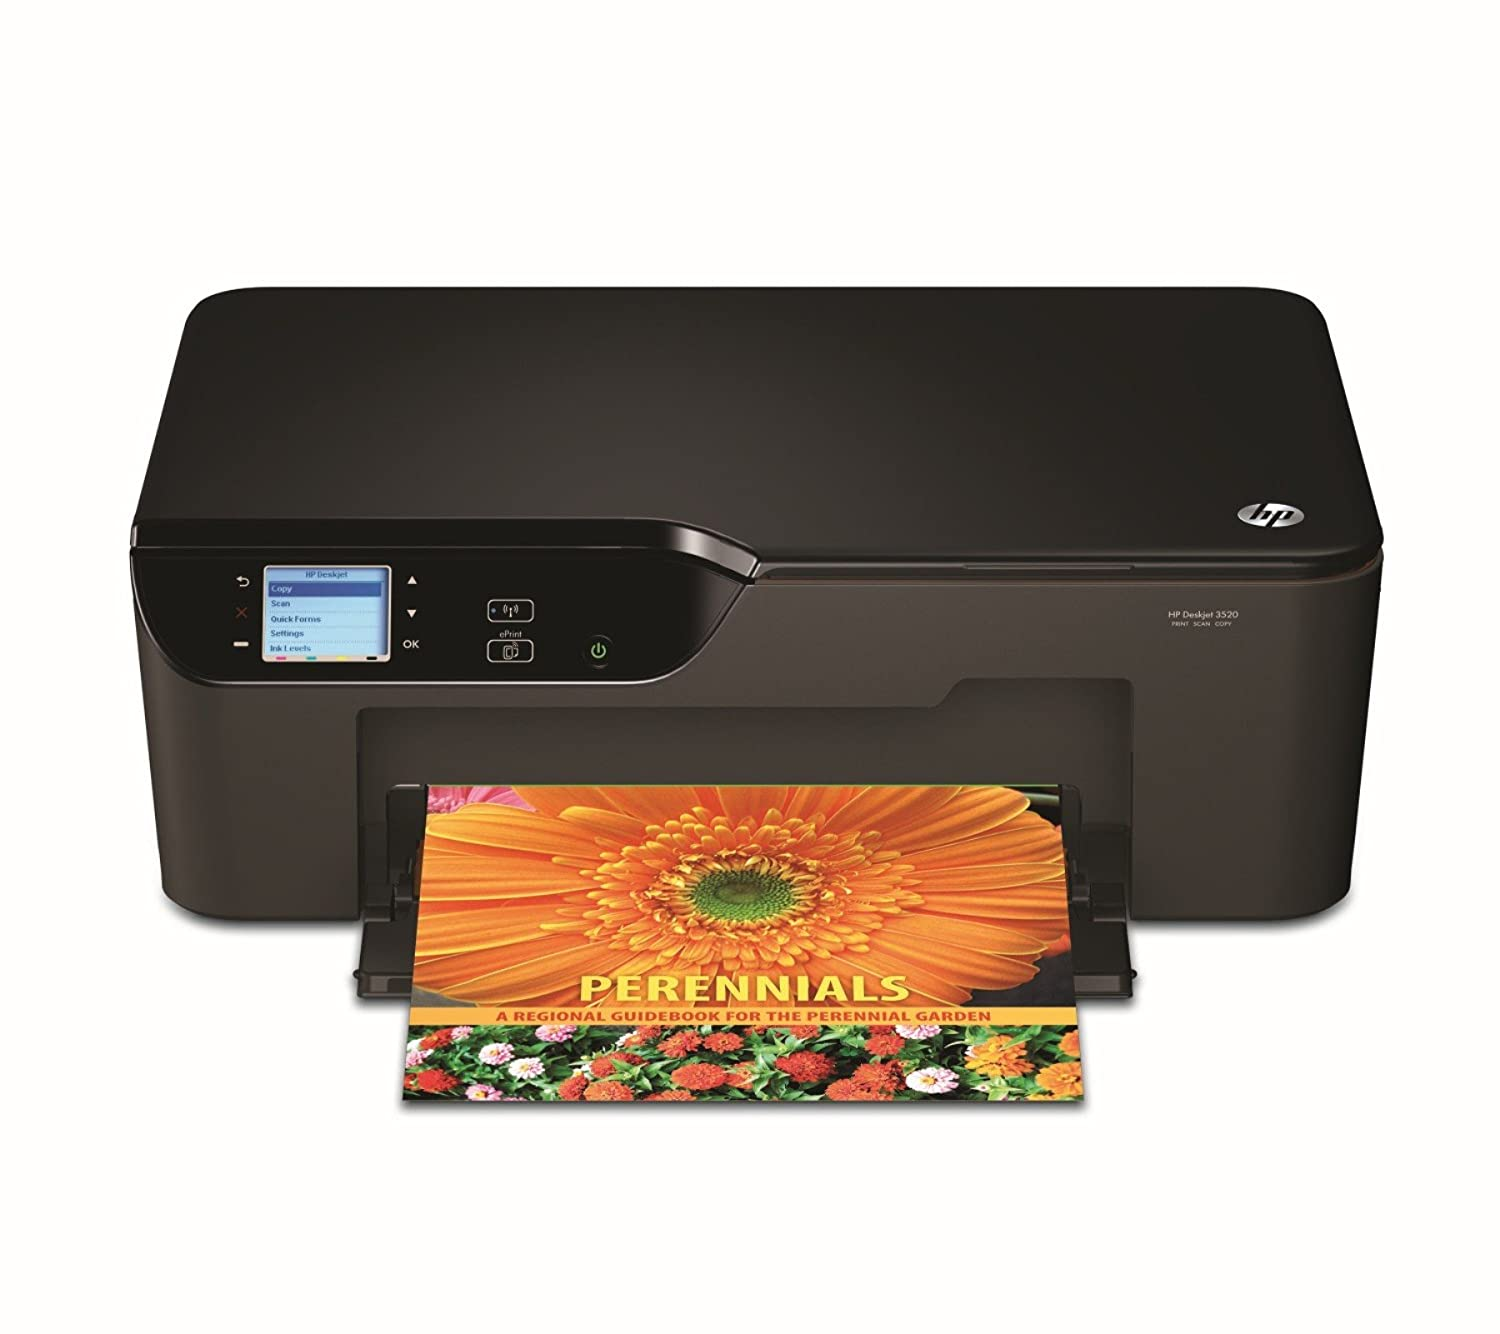 Hewlett Packard DJ 3520 e-All-In-One Wireless Printer